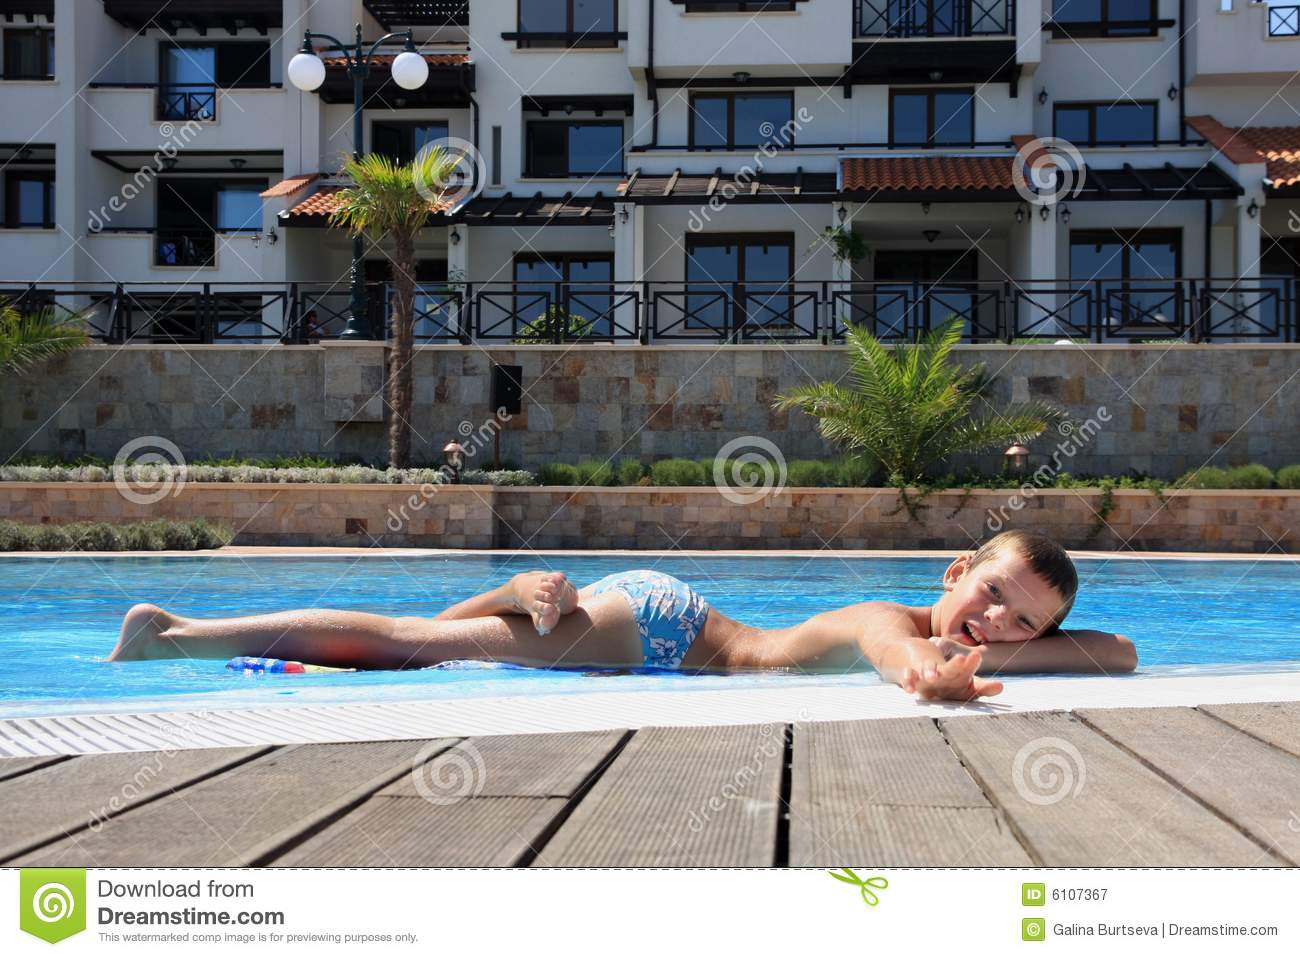 smiling boy on the edge of swimming pool stock image image 6107367. Black Bedroom Furniture Sets. Home Design Ideas